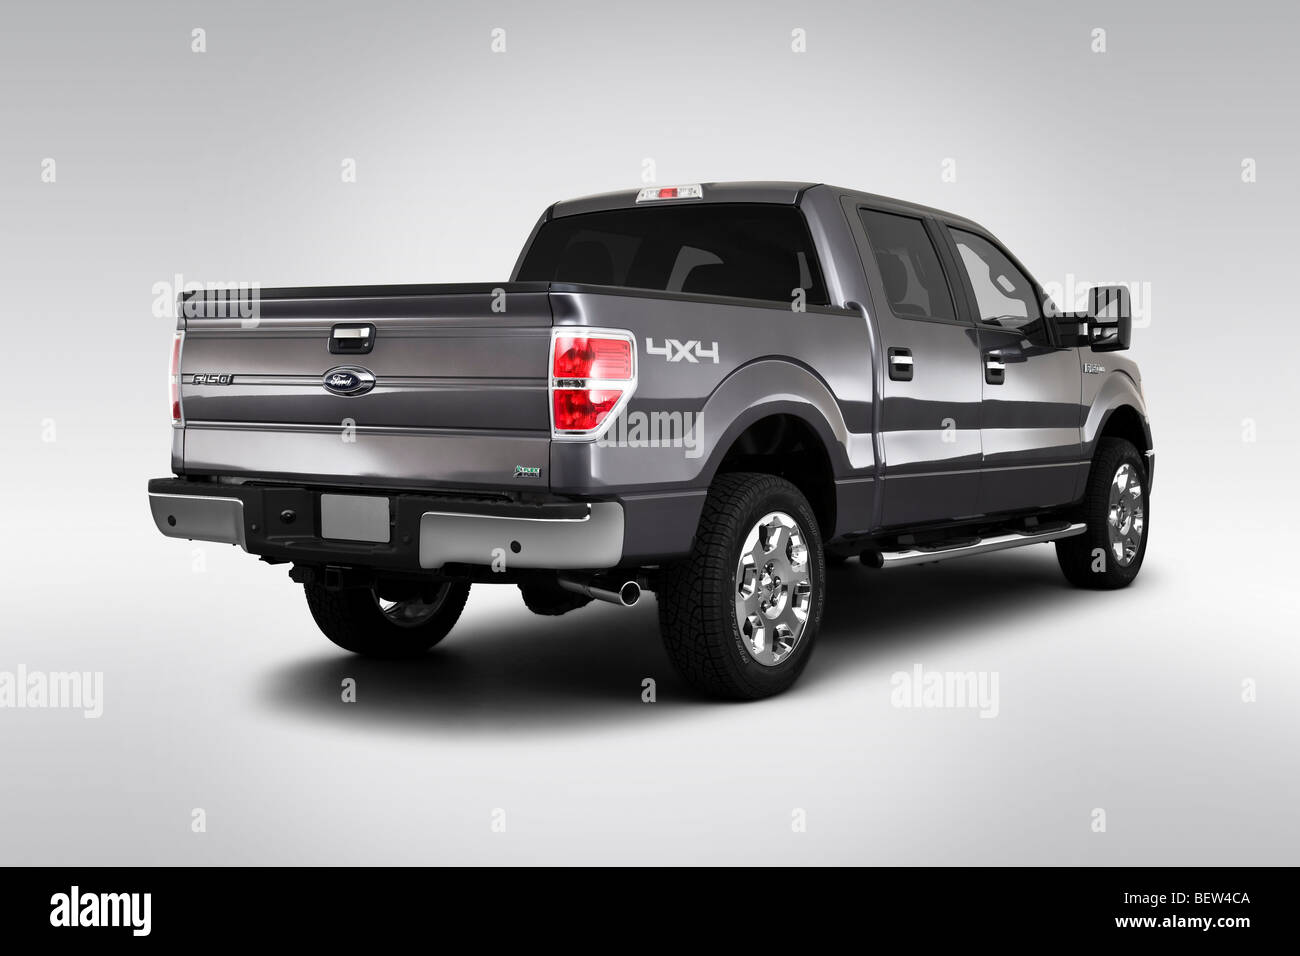 2010 Ford F-150 XLT in Gray - Rear angle view - Stock Image